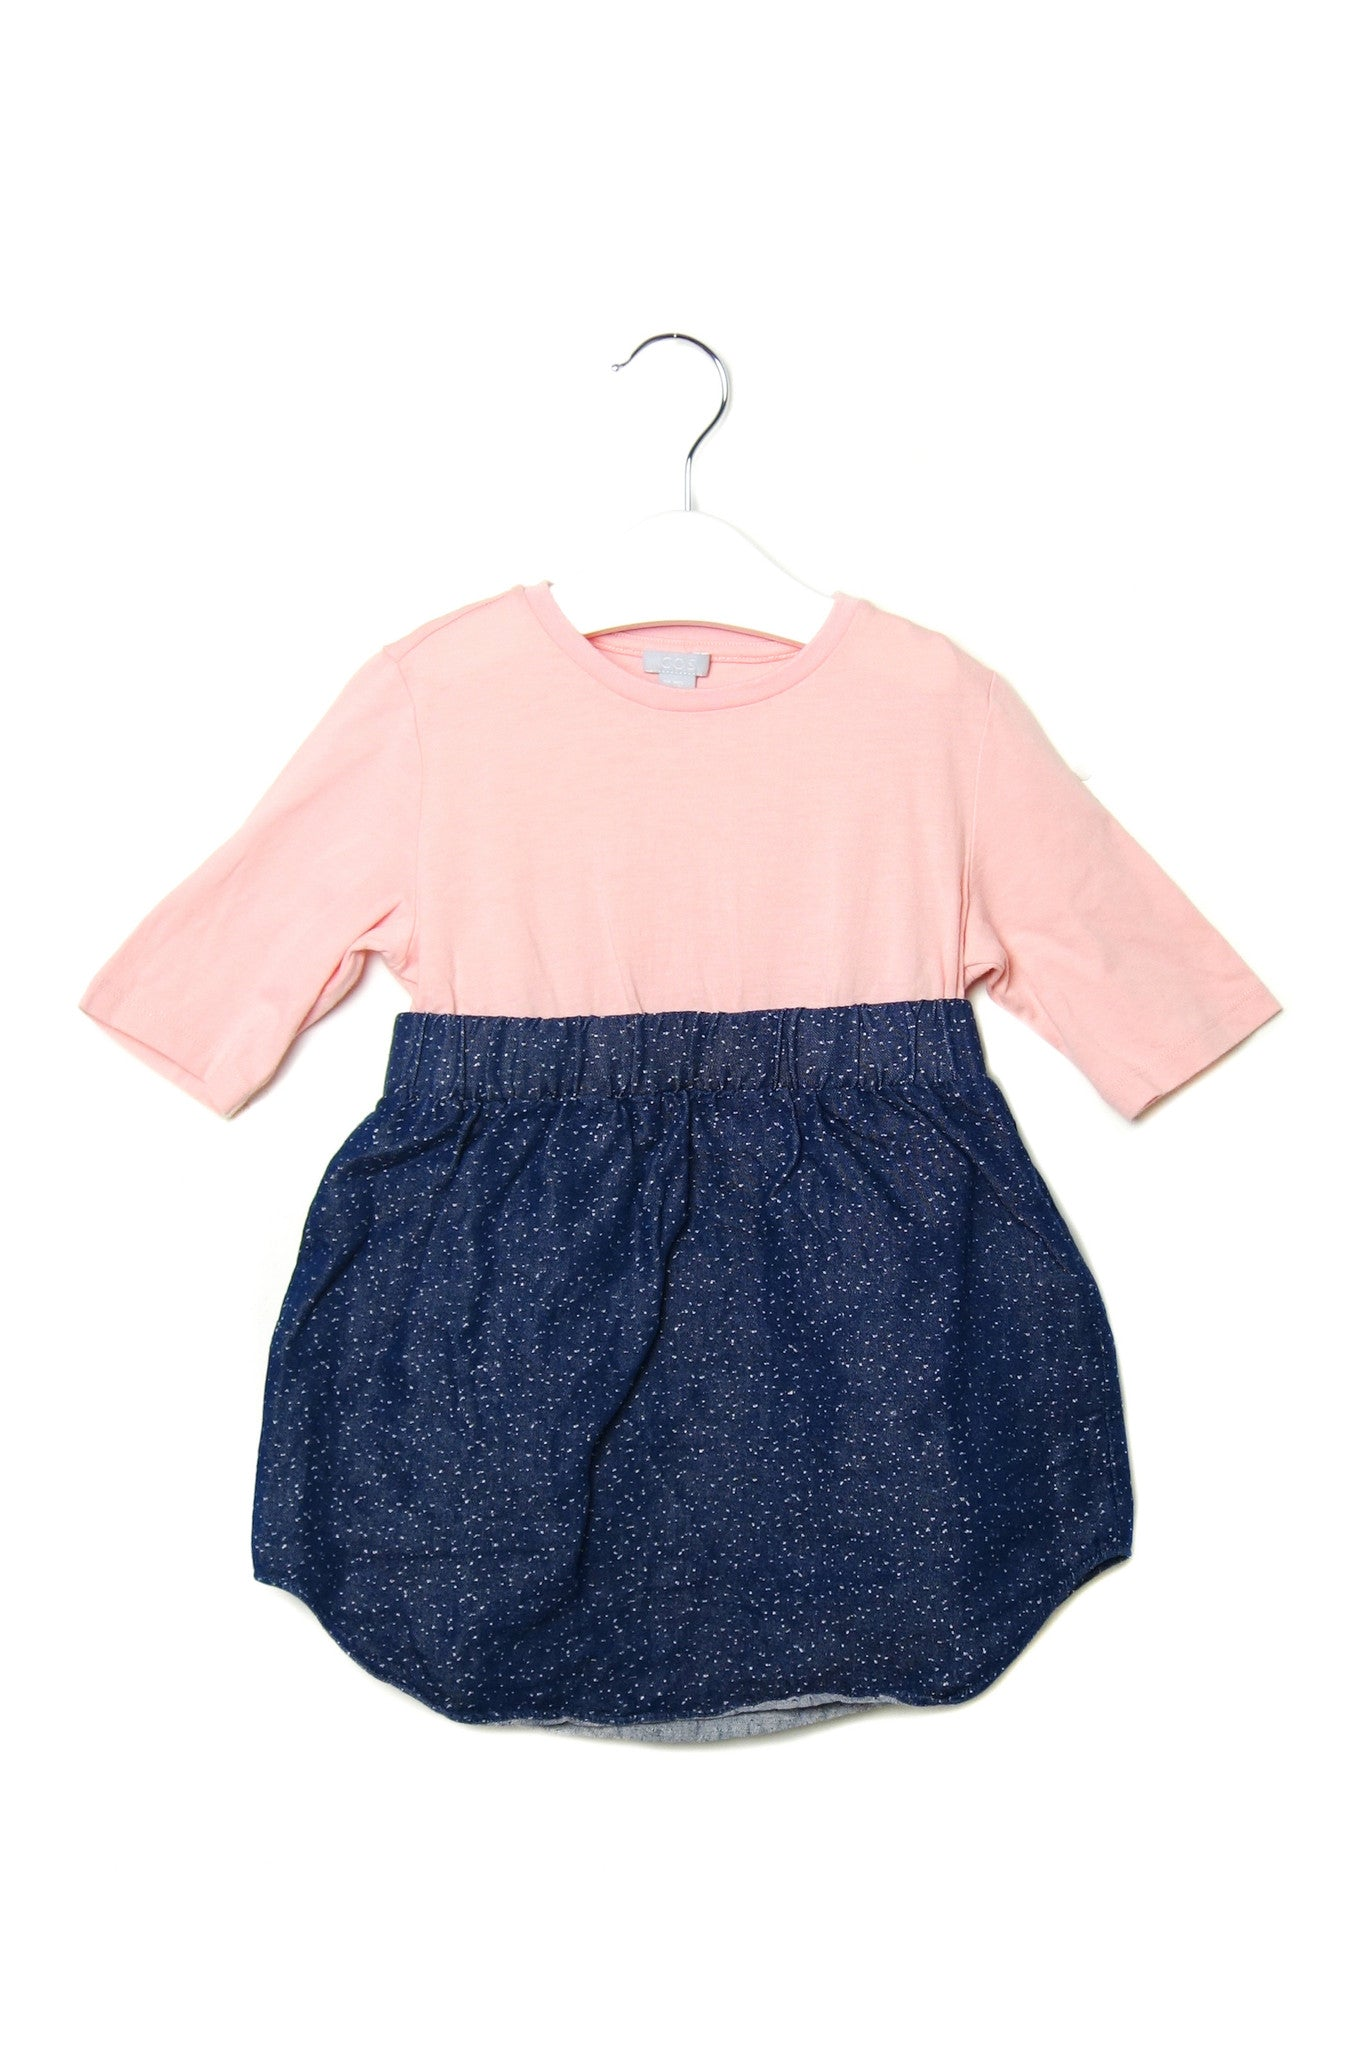 10002110 COS Kids~Dress 1-2T at Retykle